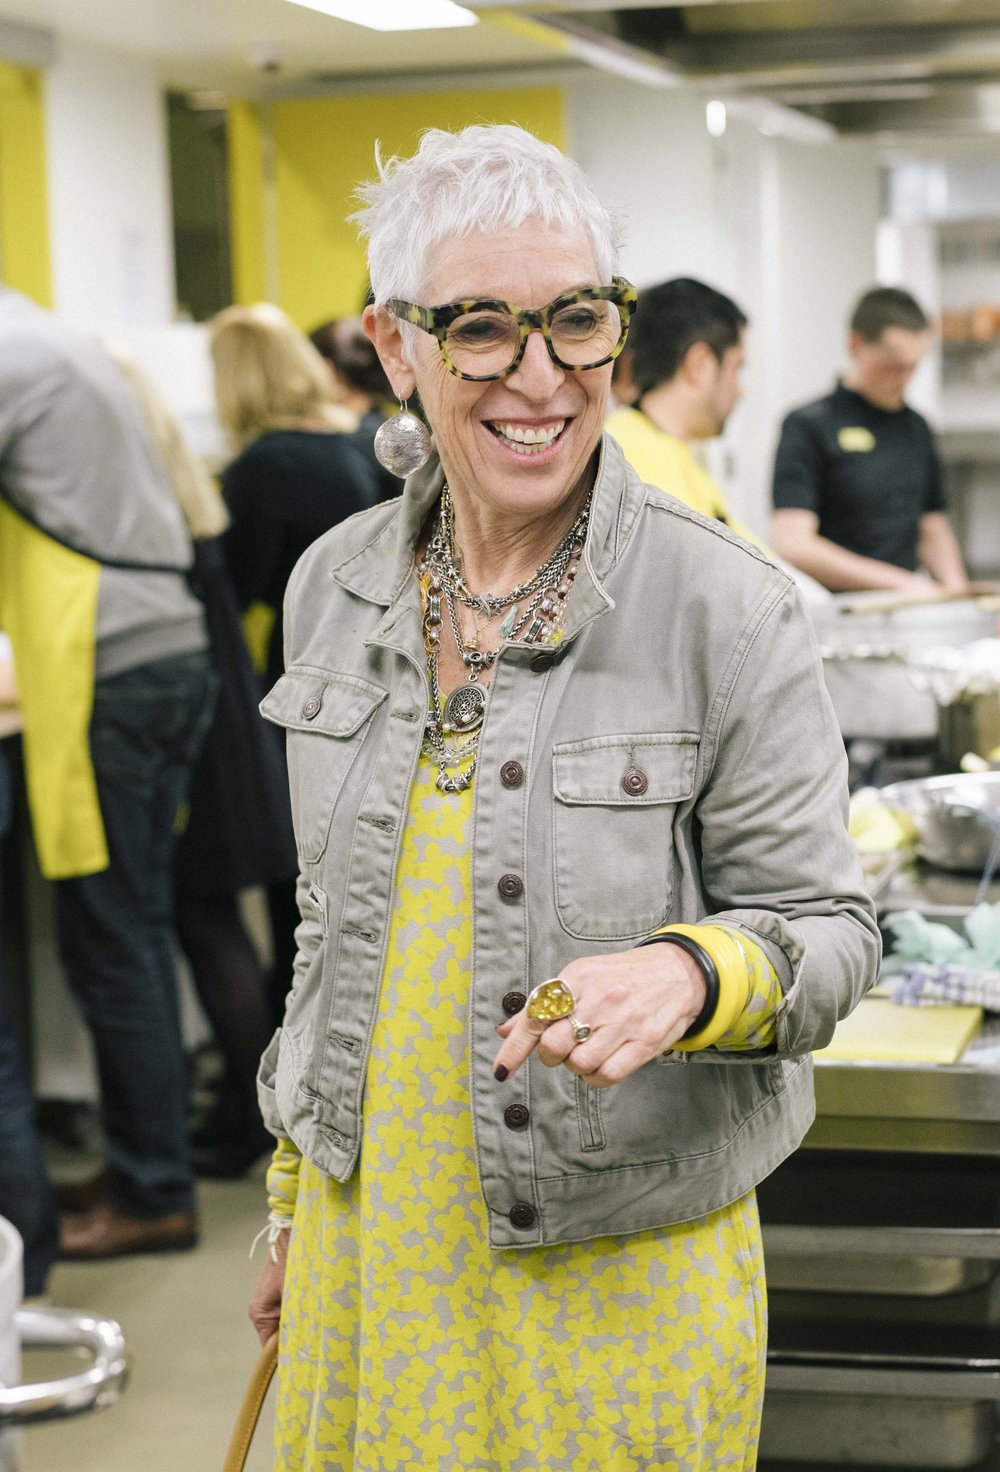 Ronni Khan in OzHarvest's HQ.